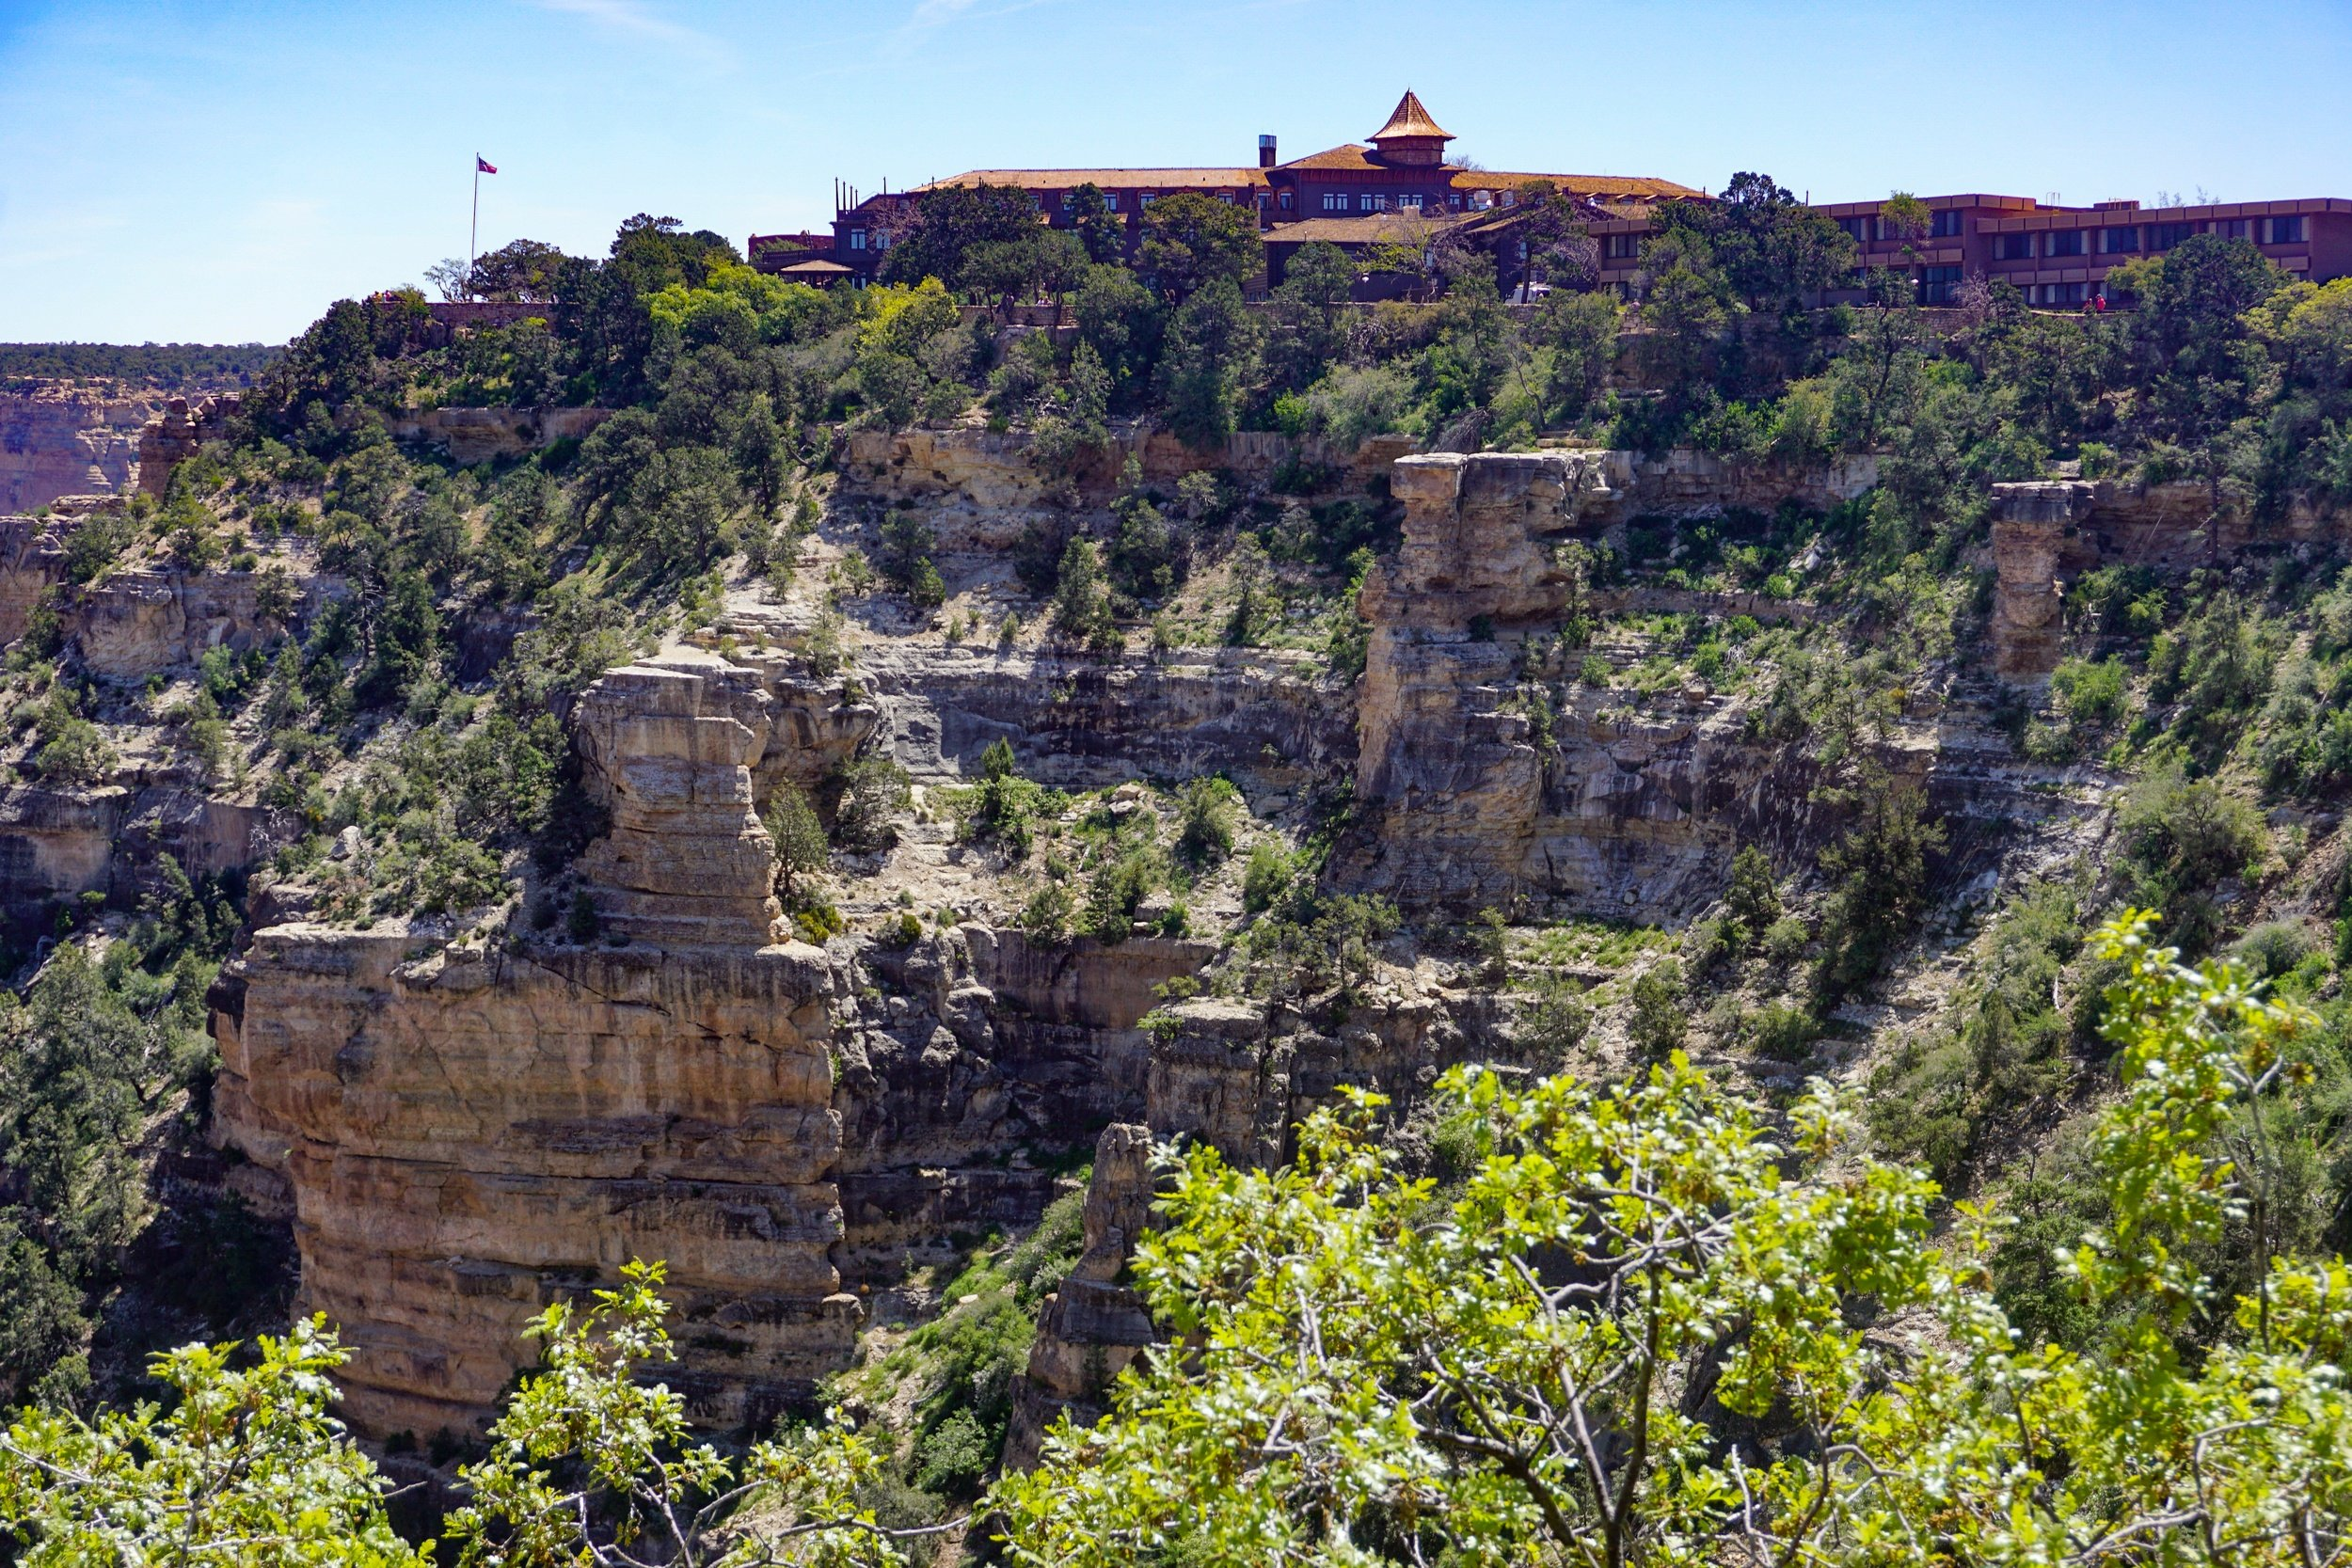 El Tovar Hotel on the rim of Grand Canyon South